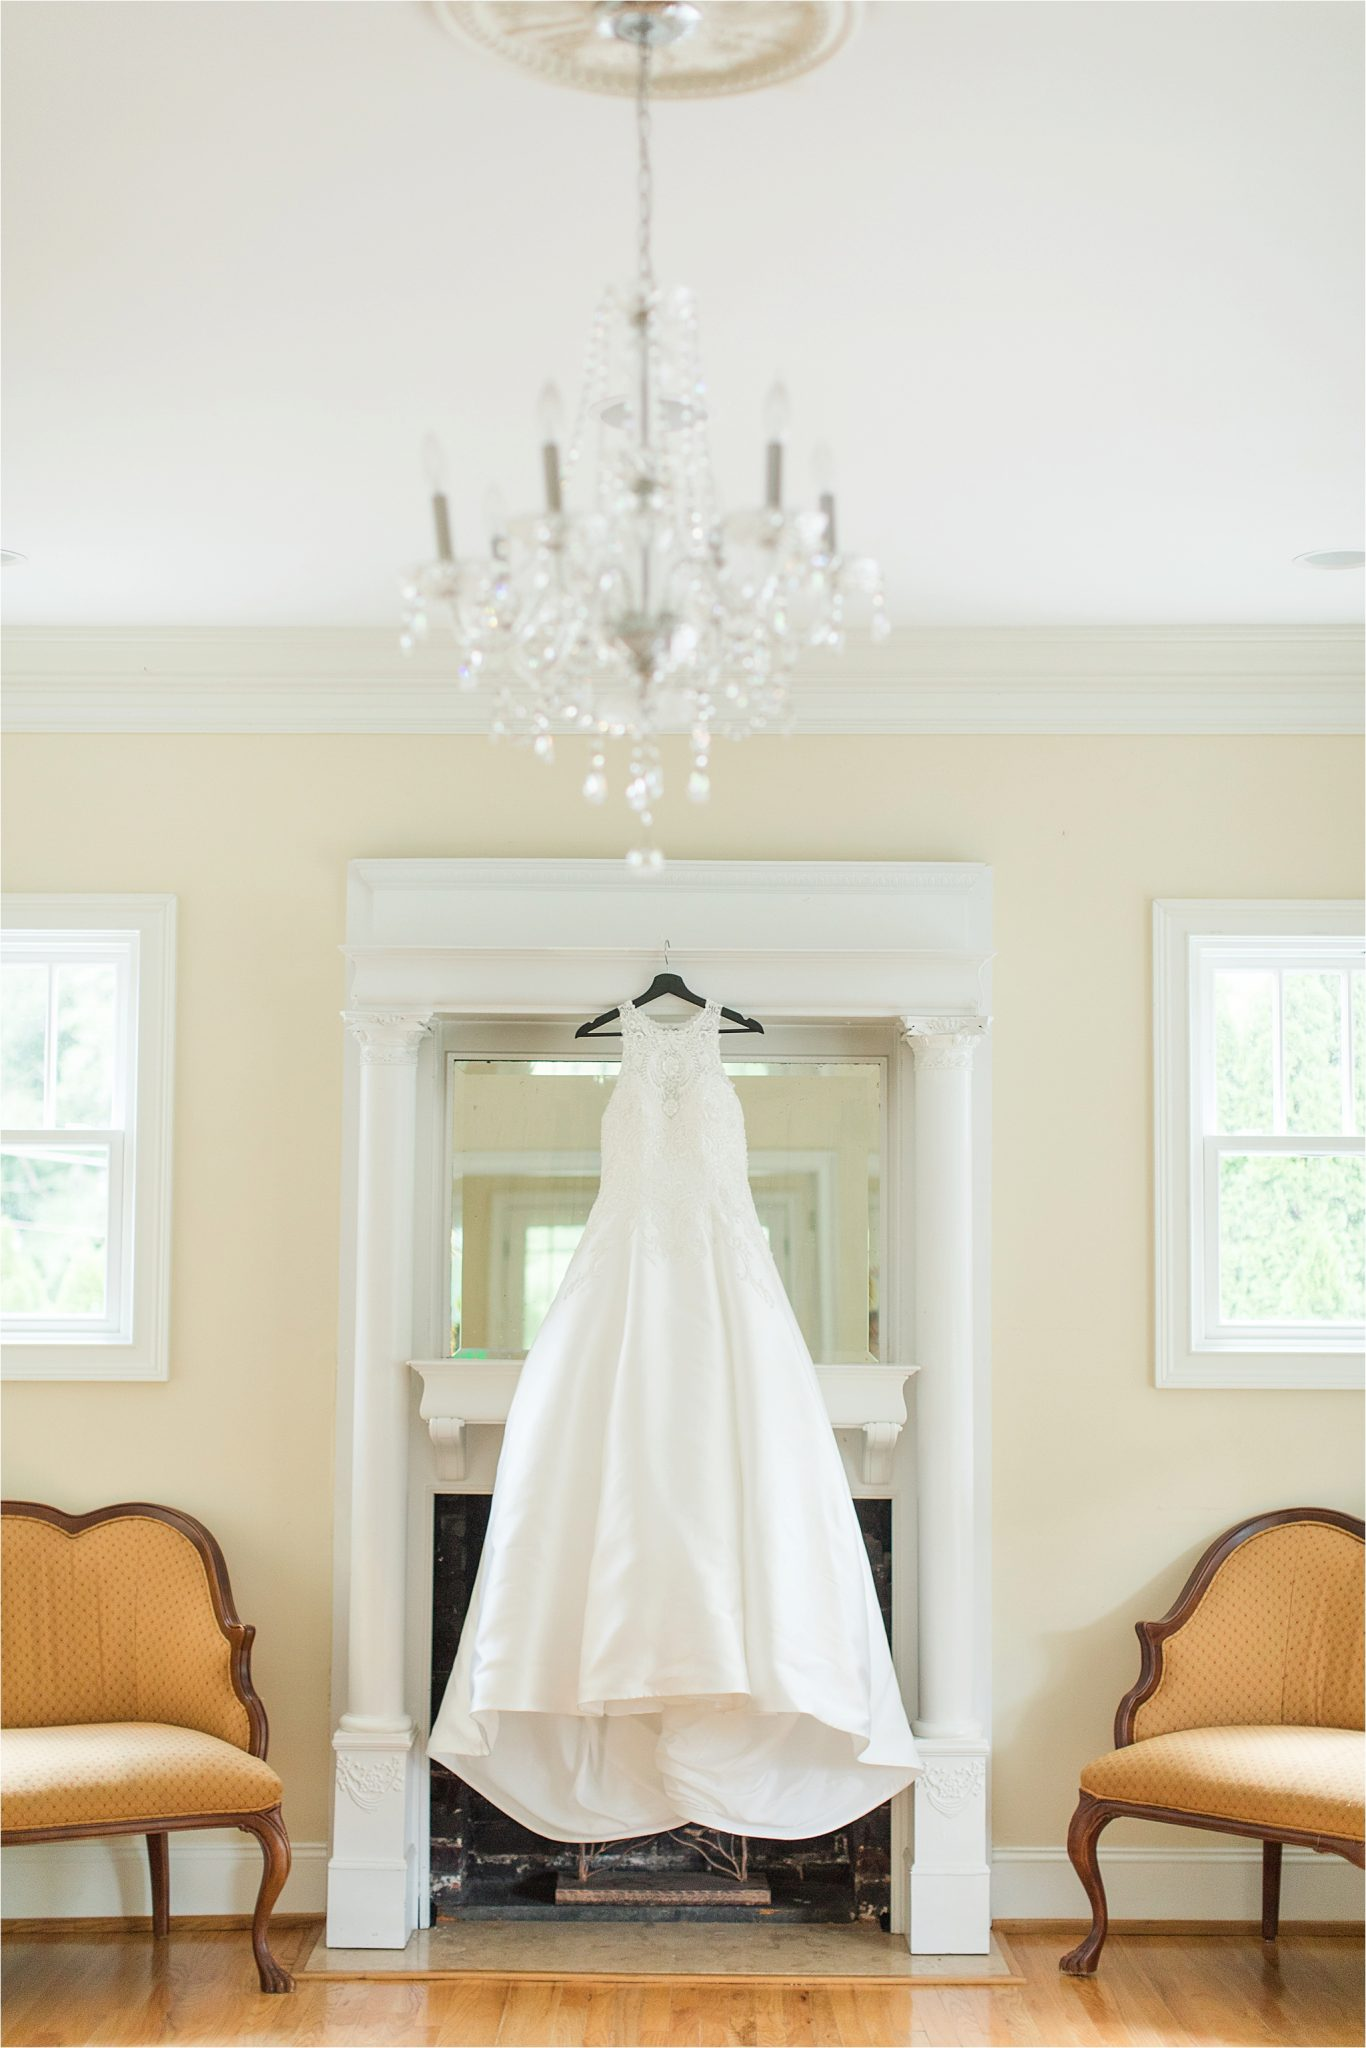 Sonnet House, Birmingham Alabama Wedding Photographer, Courtney + Ben, Wedding Dress